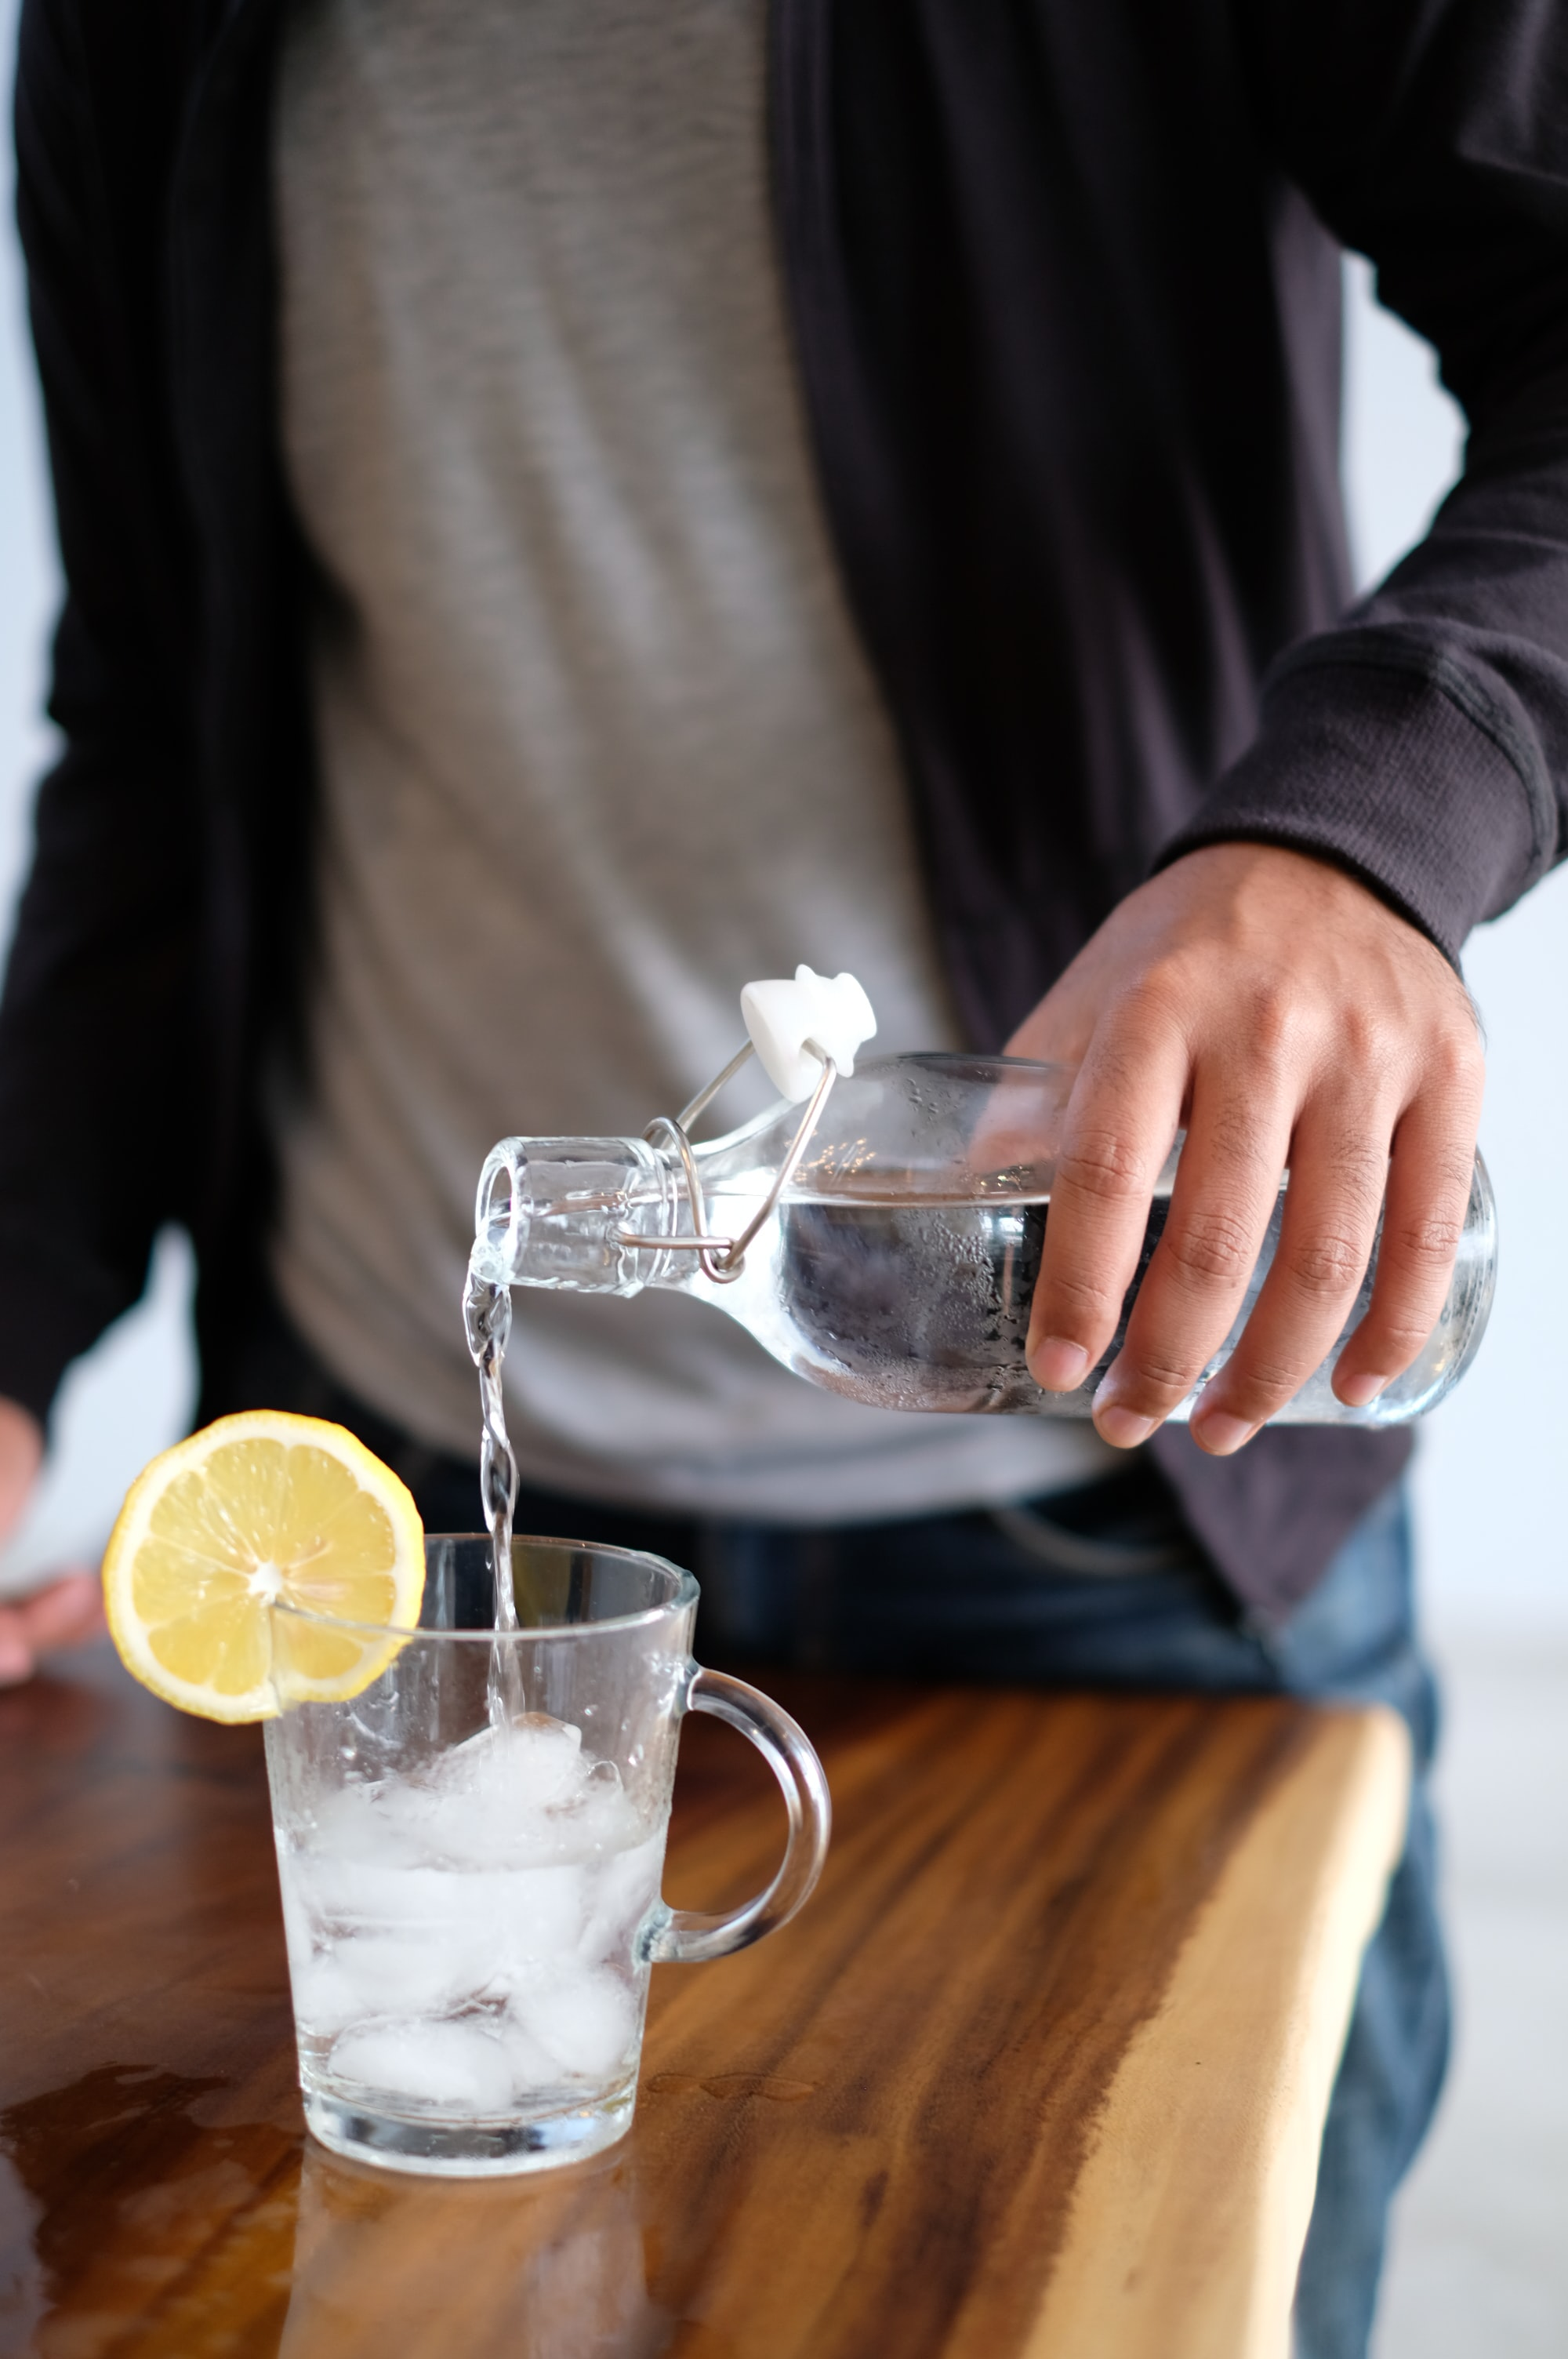 Man pouring water over ice, lemon slice on side